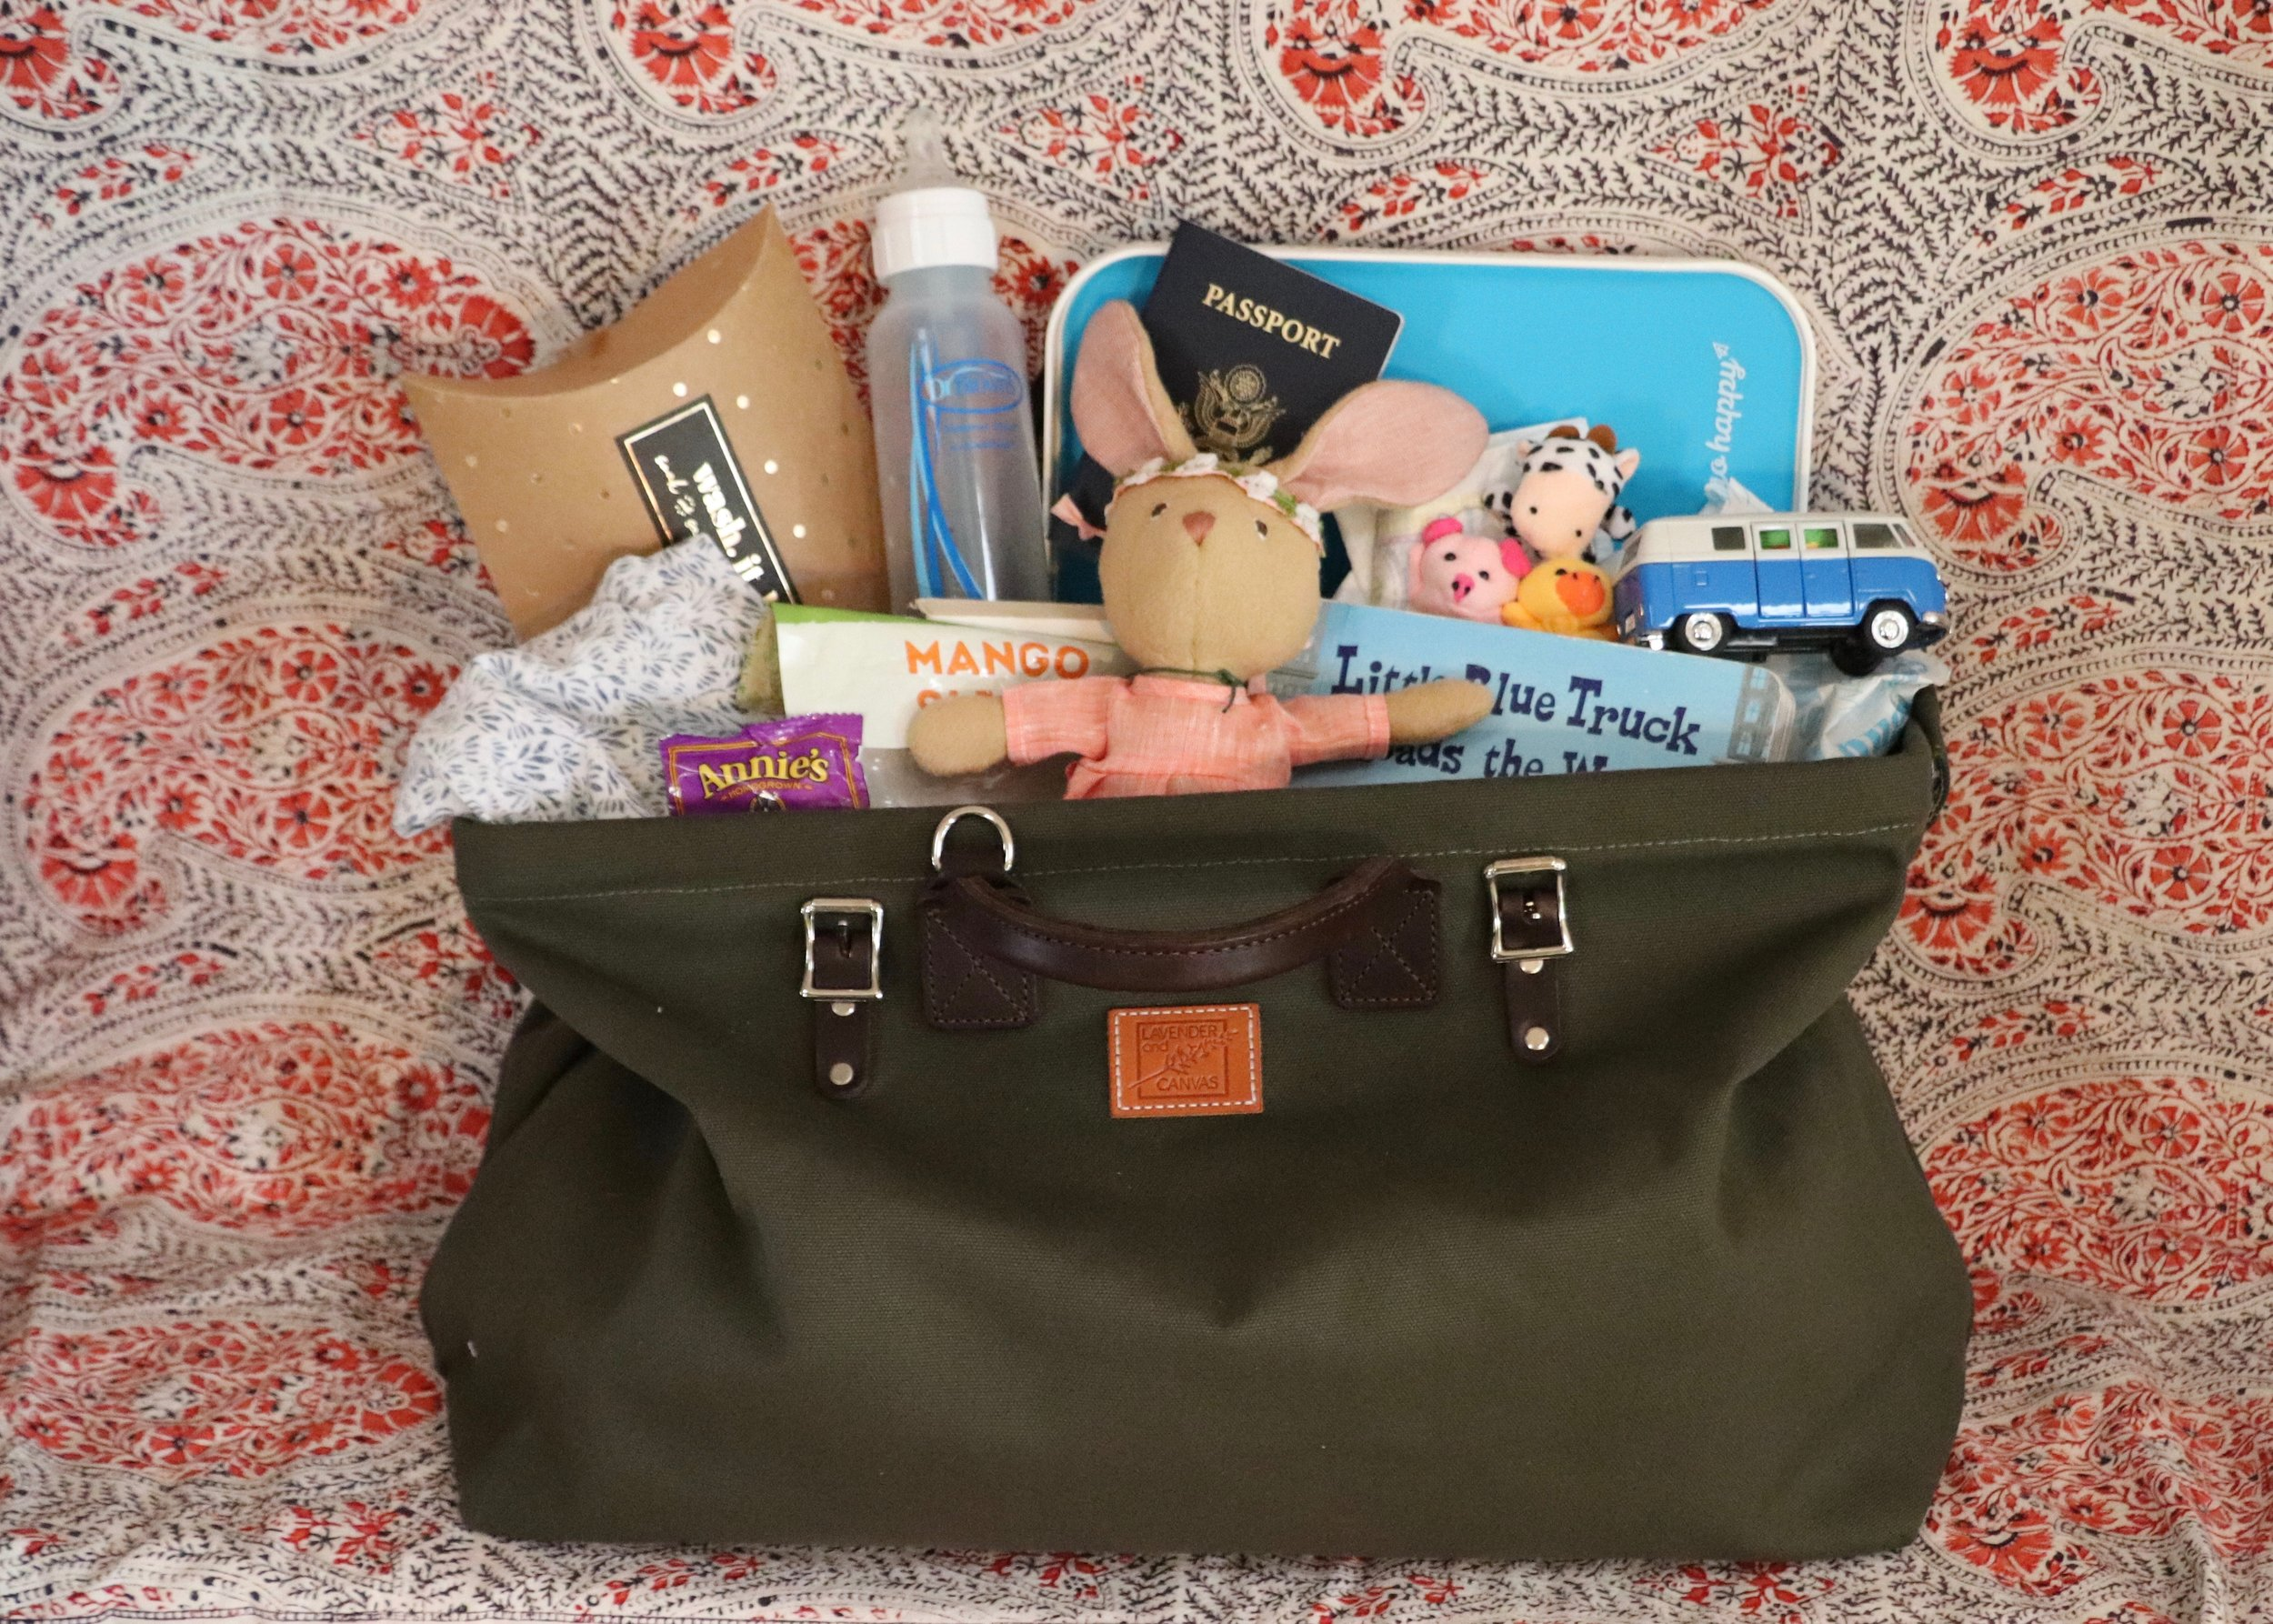 The Carpenter Bag by Lavender and Canvas  : You won't believe the amount of hot (mom) mess you can squirrel away in here.